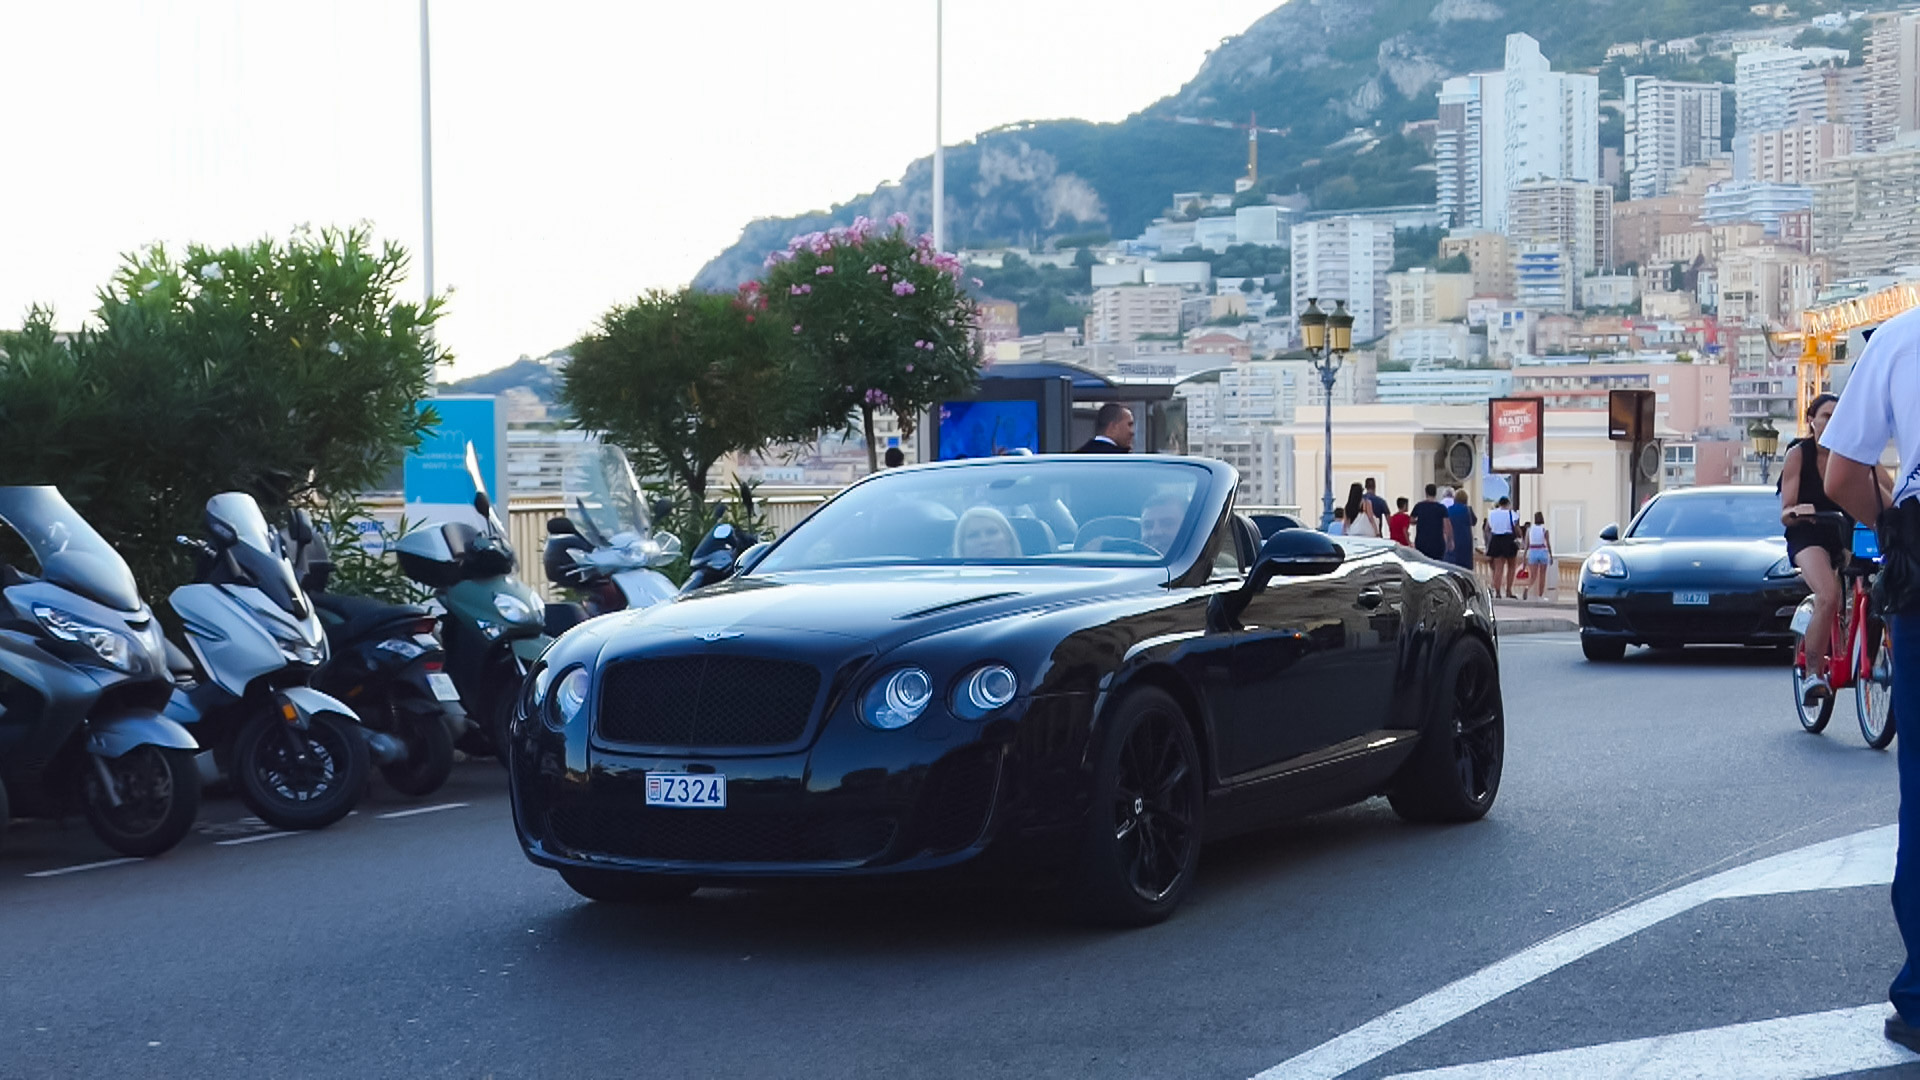 Bentley Continental GTC Supersports - Z324 (MC)